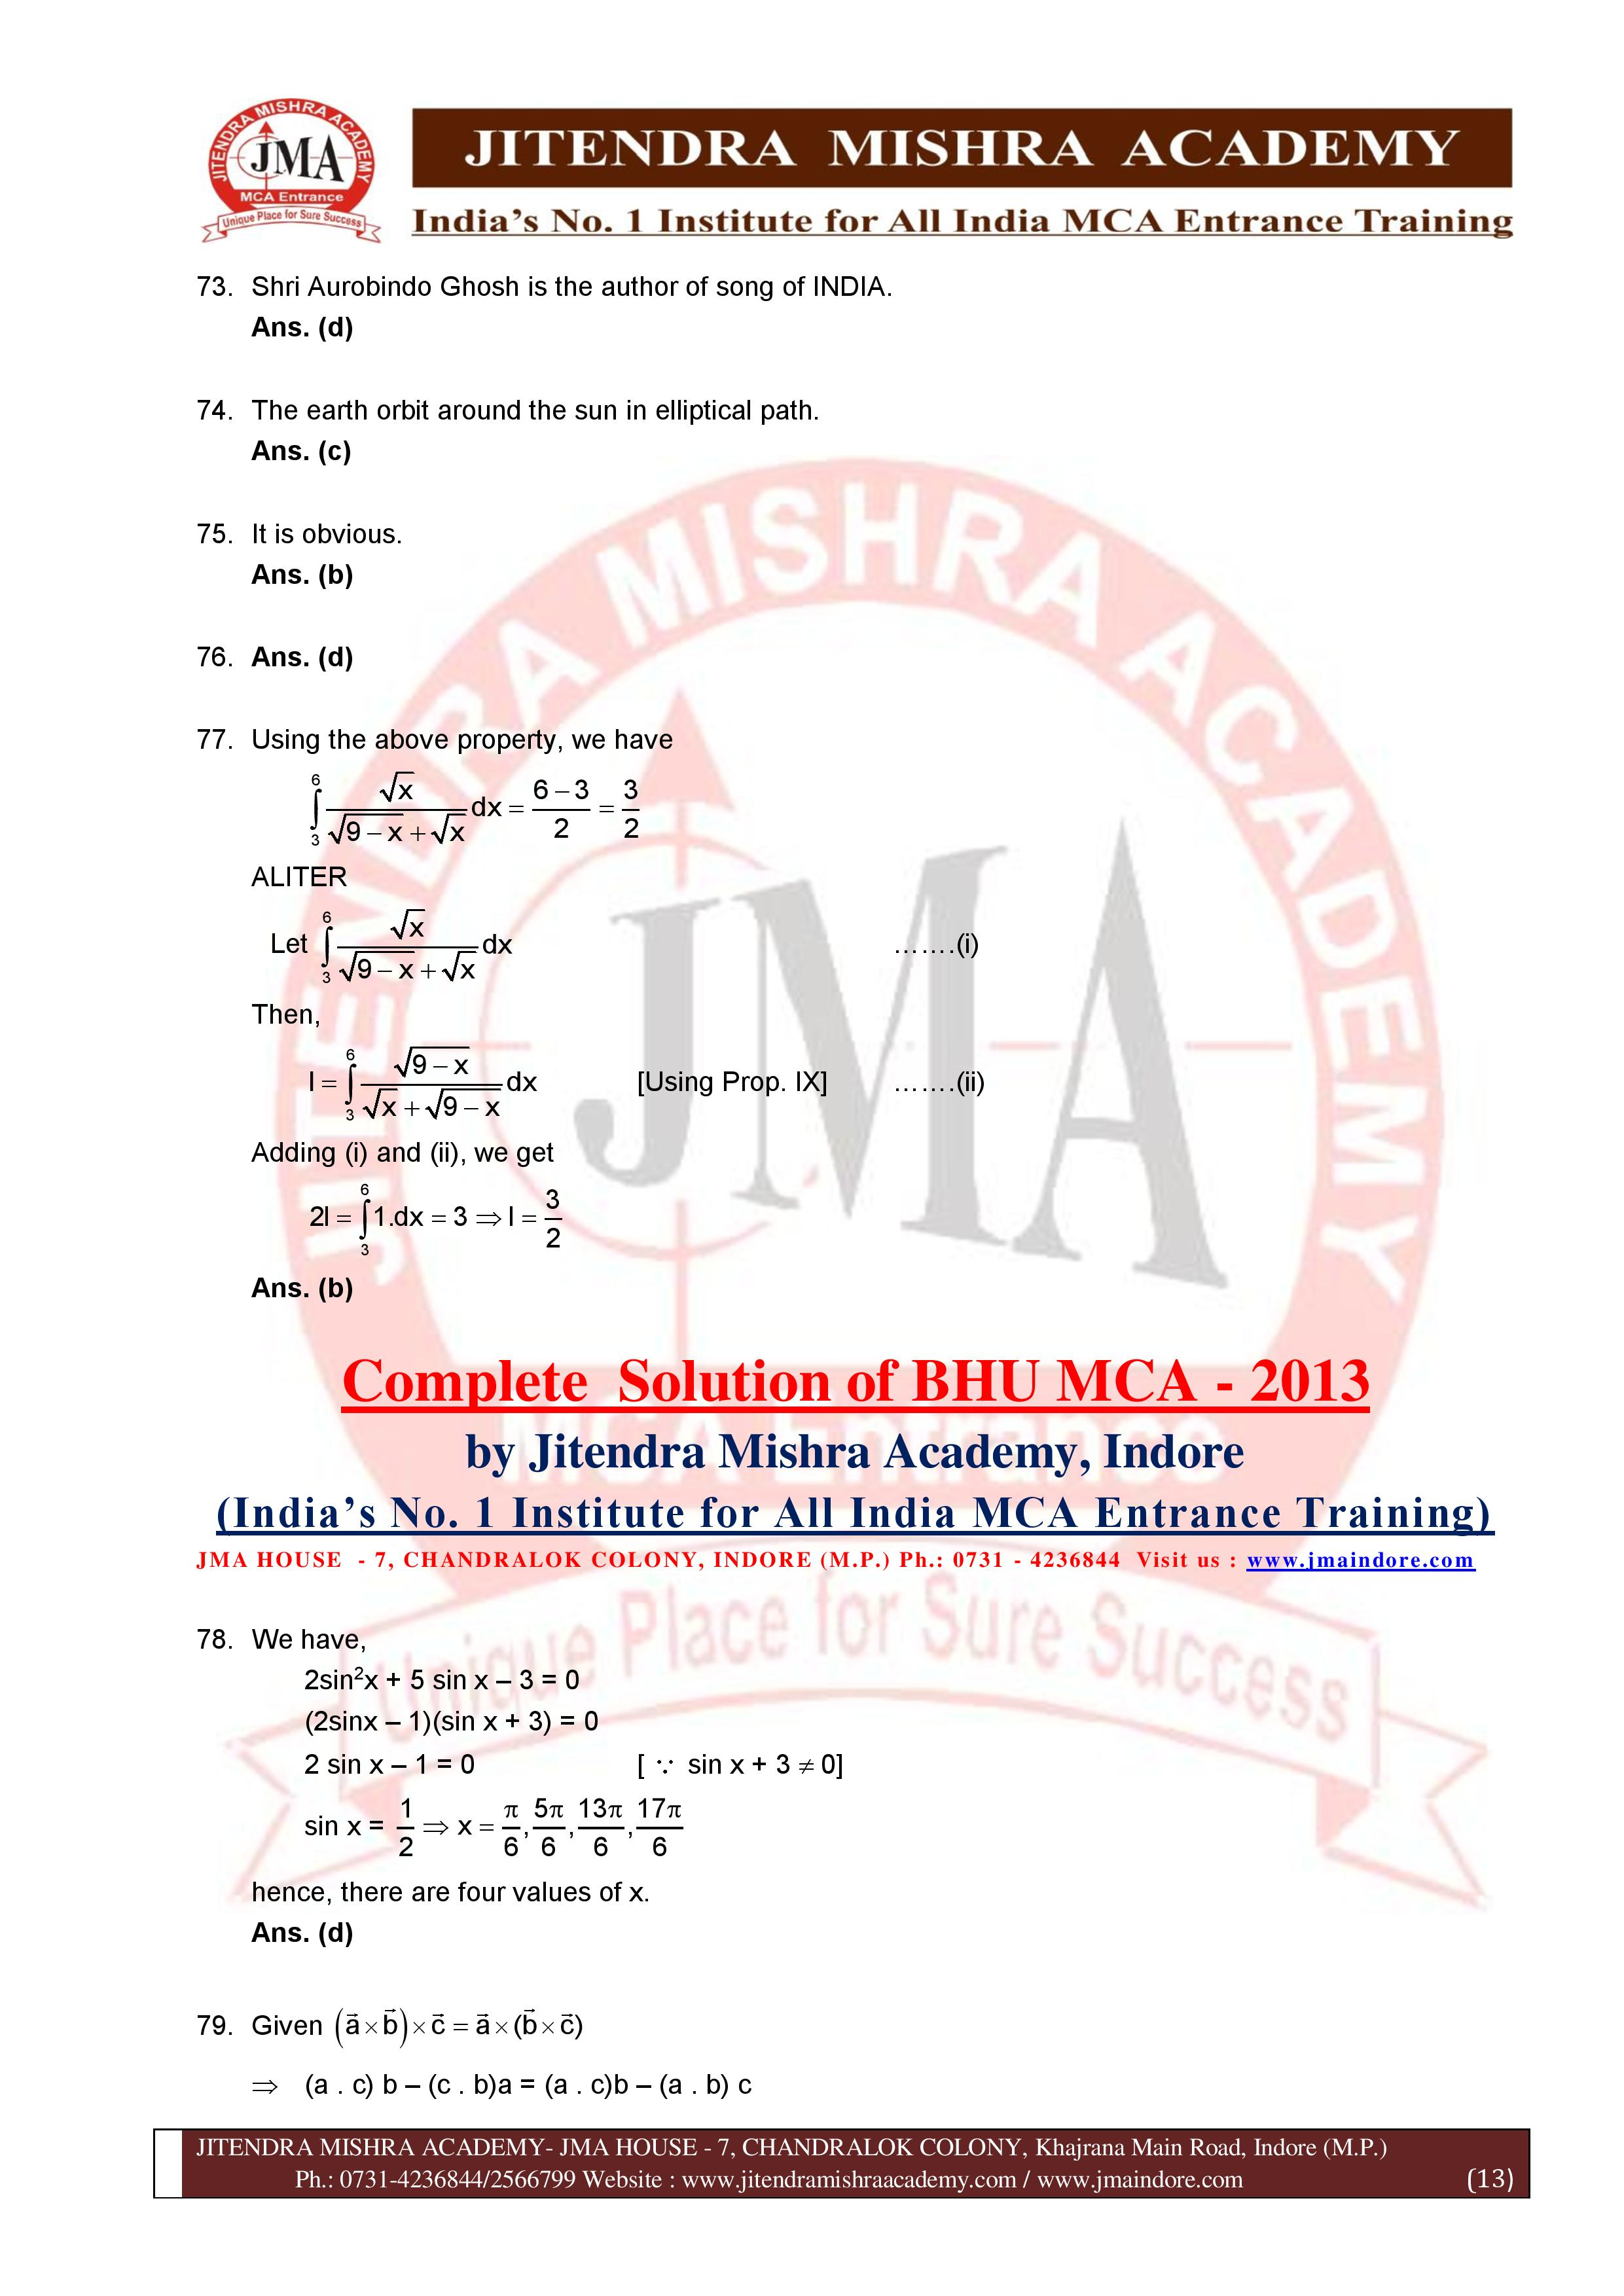 BHU 2013 SOLUTION (SET - 3) (06.07.16)-page-013